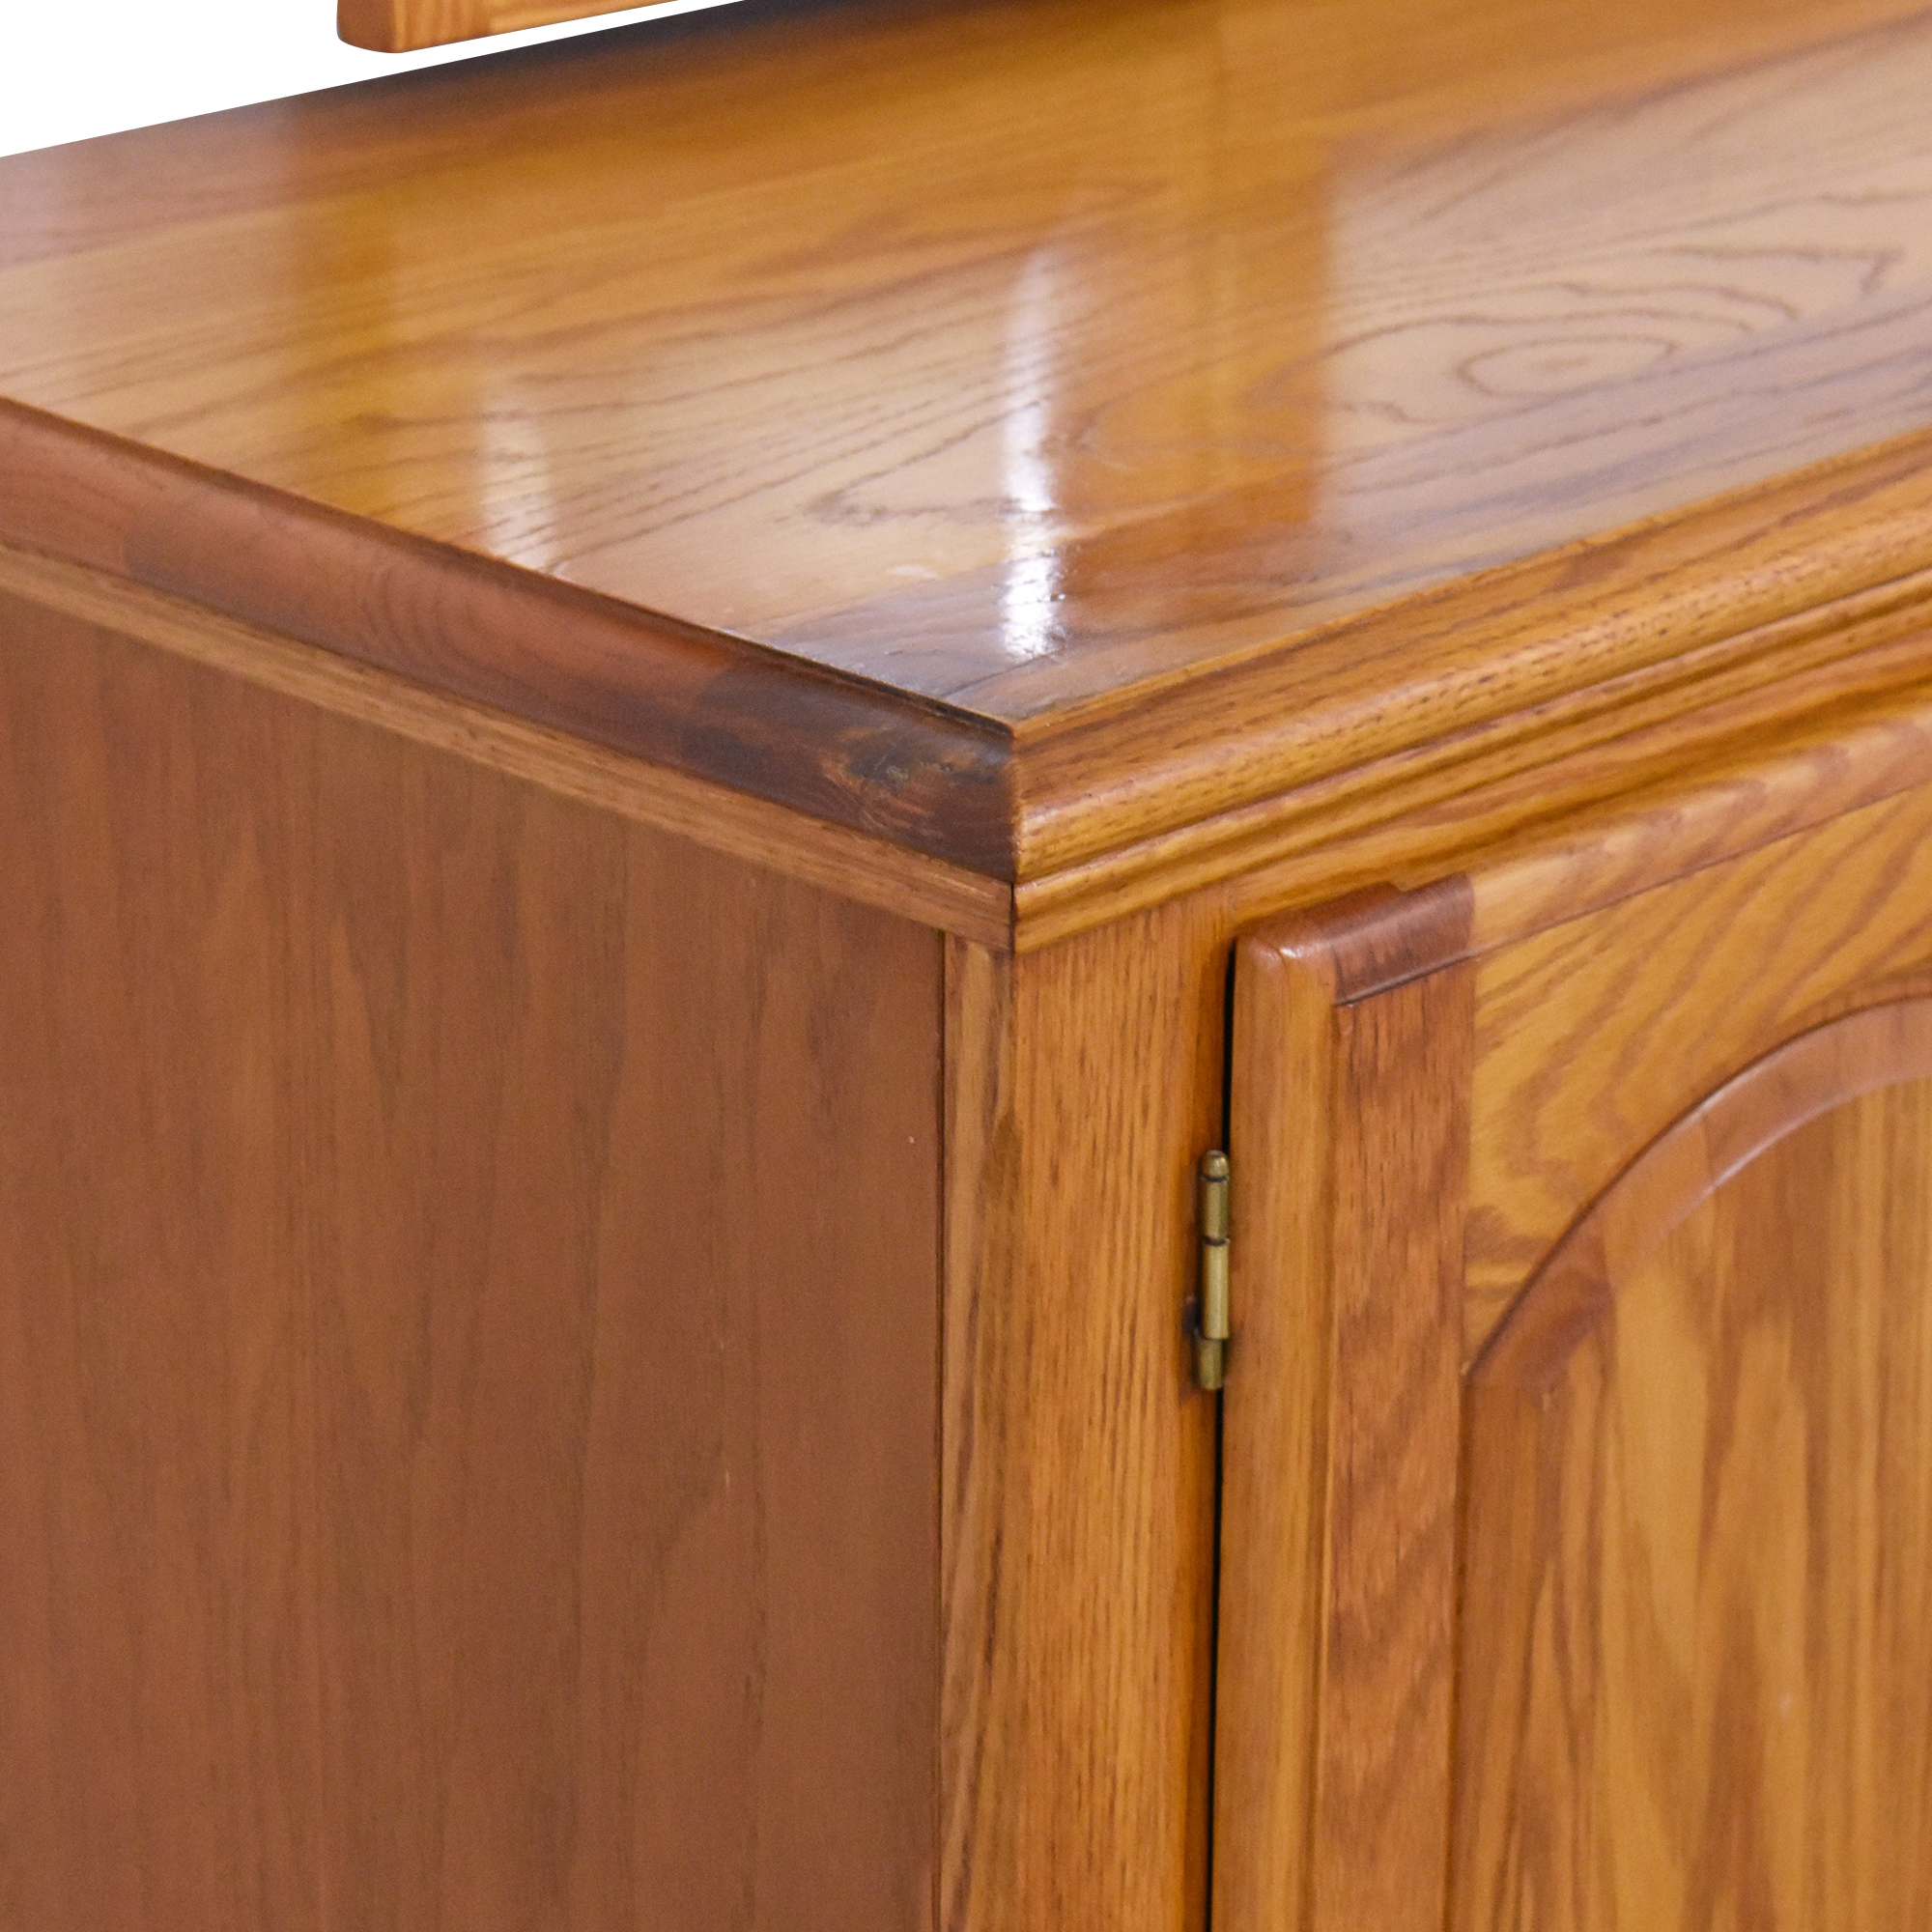 Nathan Hale Nathan Hale Door Dresser and Triple Mirror dimensions